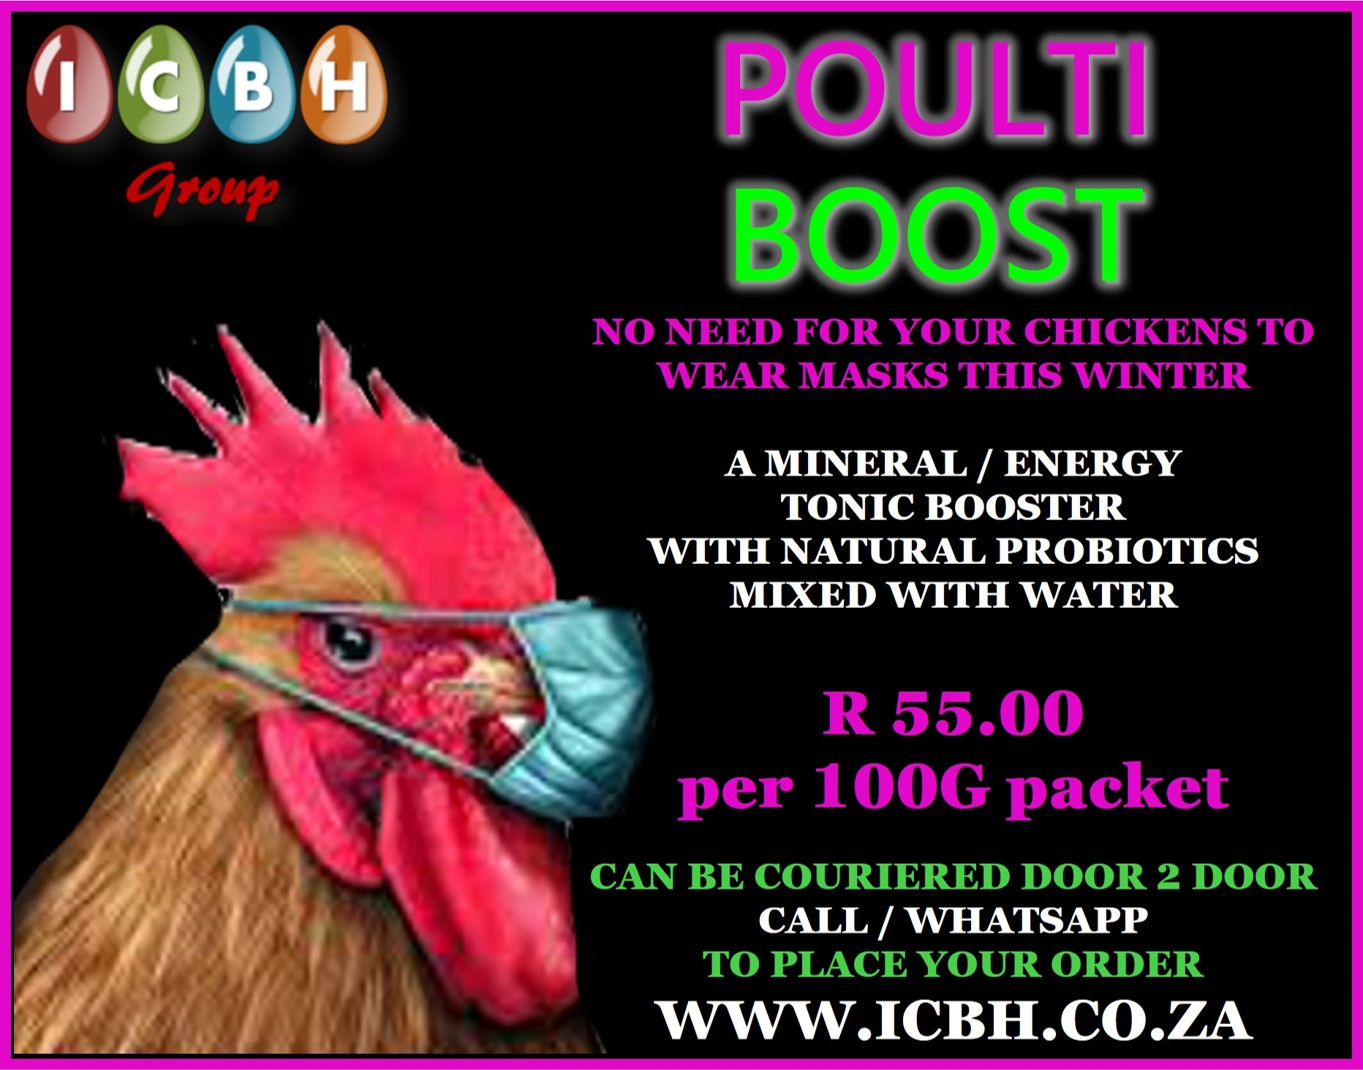 ICBH - POULTI BOOST - NO NEED TO MASK UP.jpg